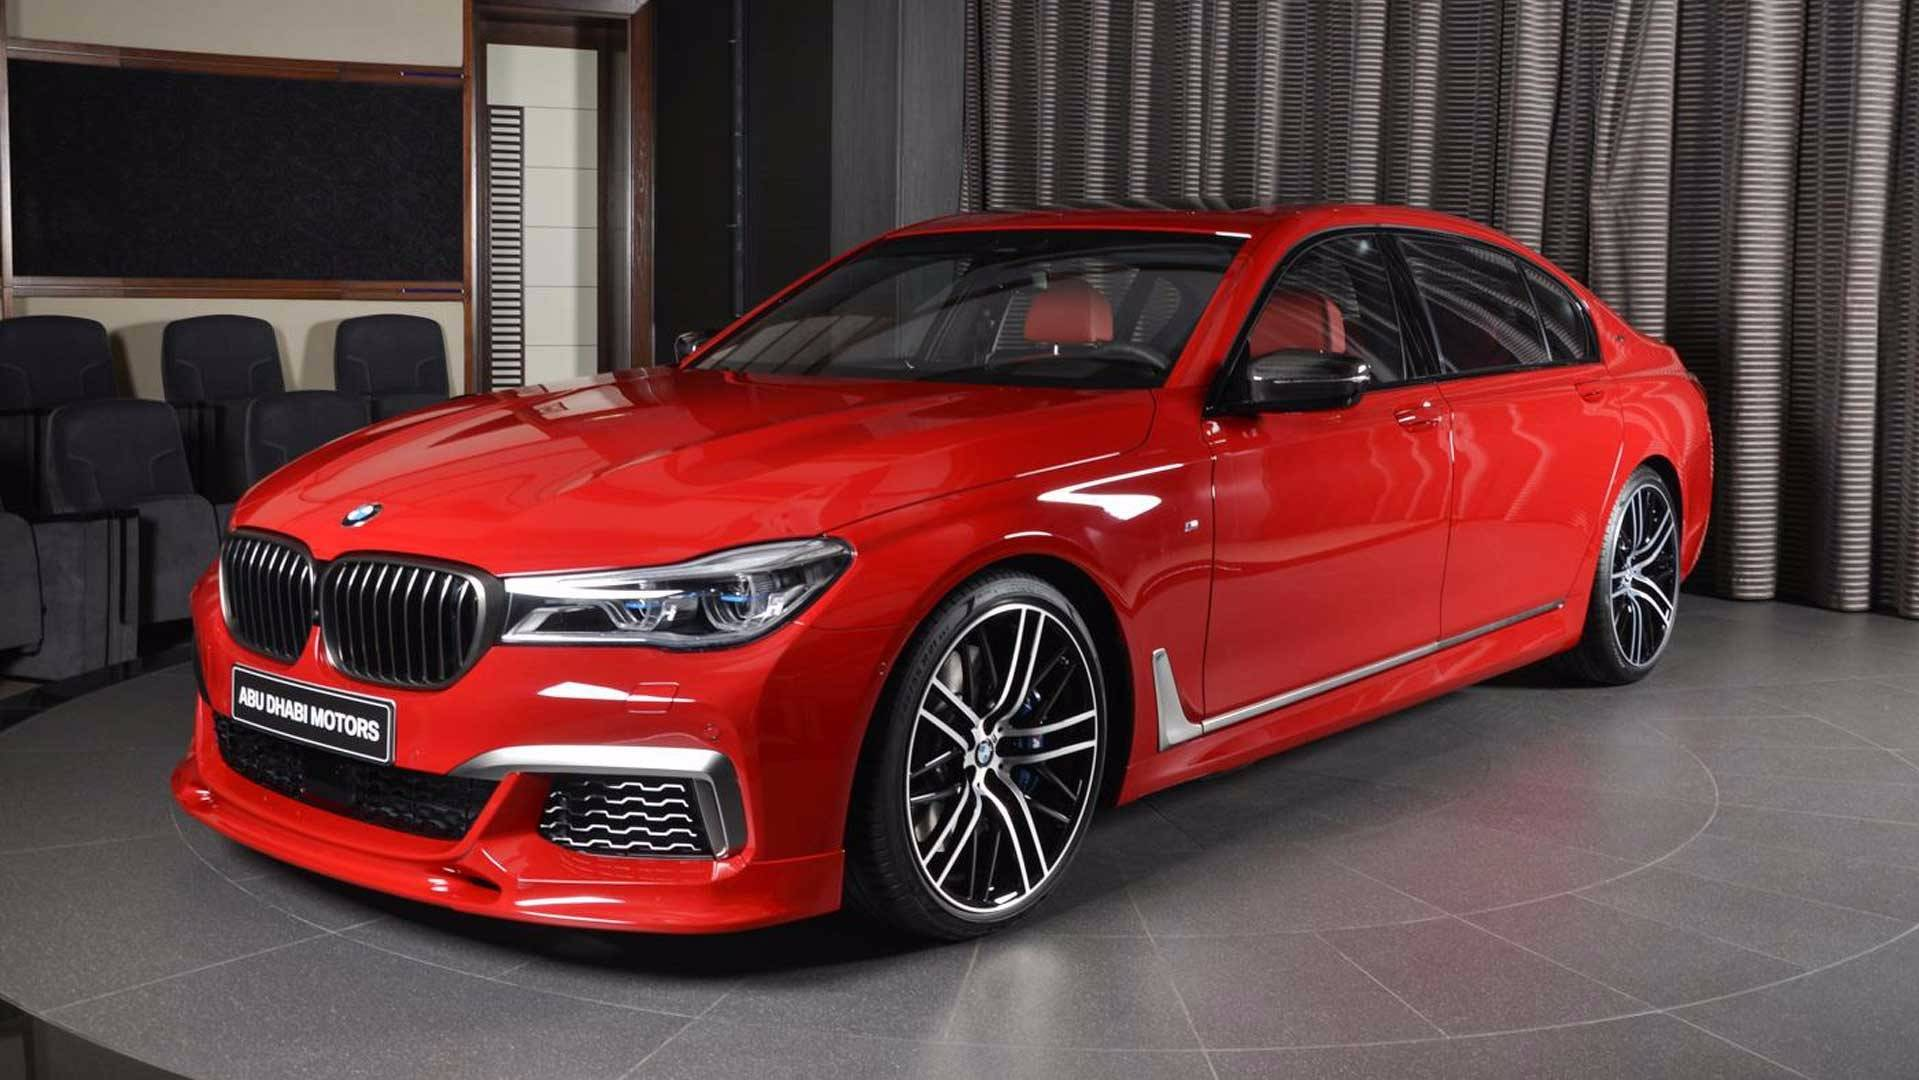 This Arrest Me Red Bmw M760li Xdrive Is An Attention Getter